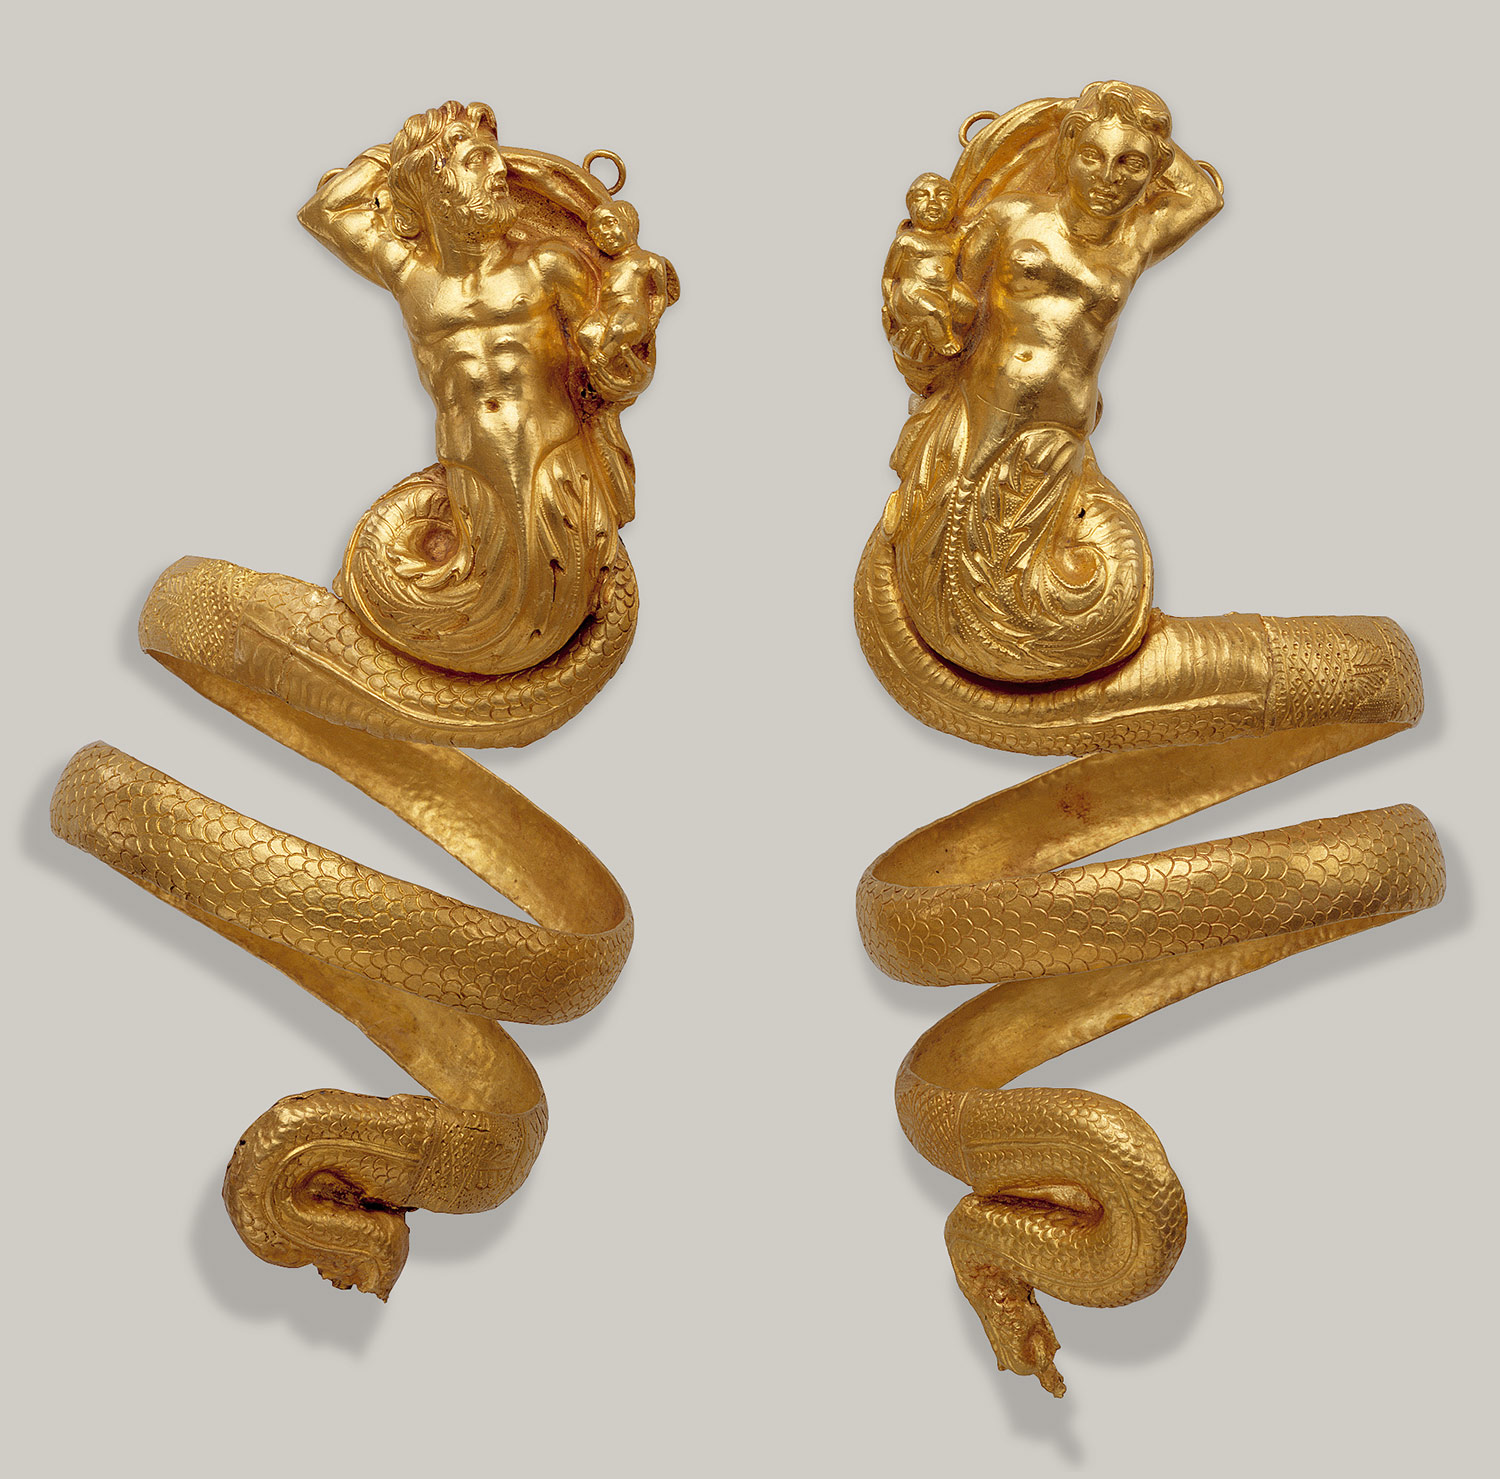 Artefact Decoration Hellenistic Jewelry Thematic Essay Heilbrunn Timeline